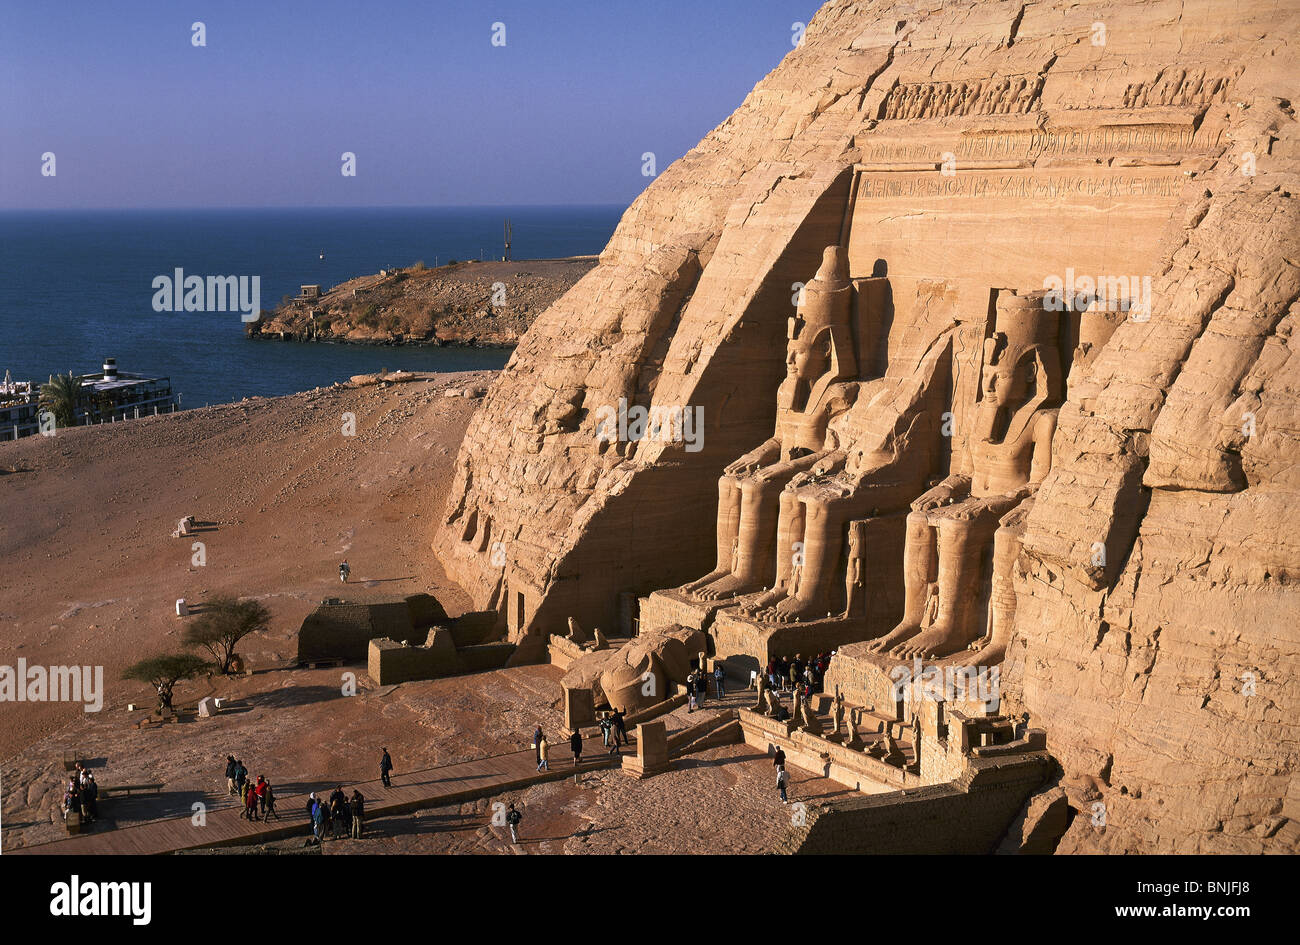 Egypt March 2007 Abu Simbel Temple Nasser Lake ancient historic culture - Stock Image